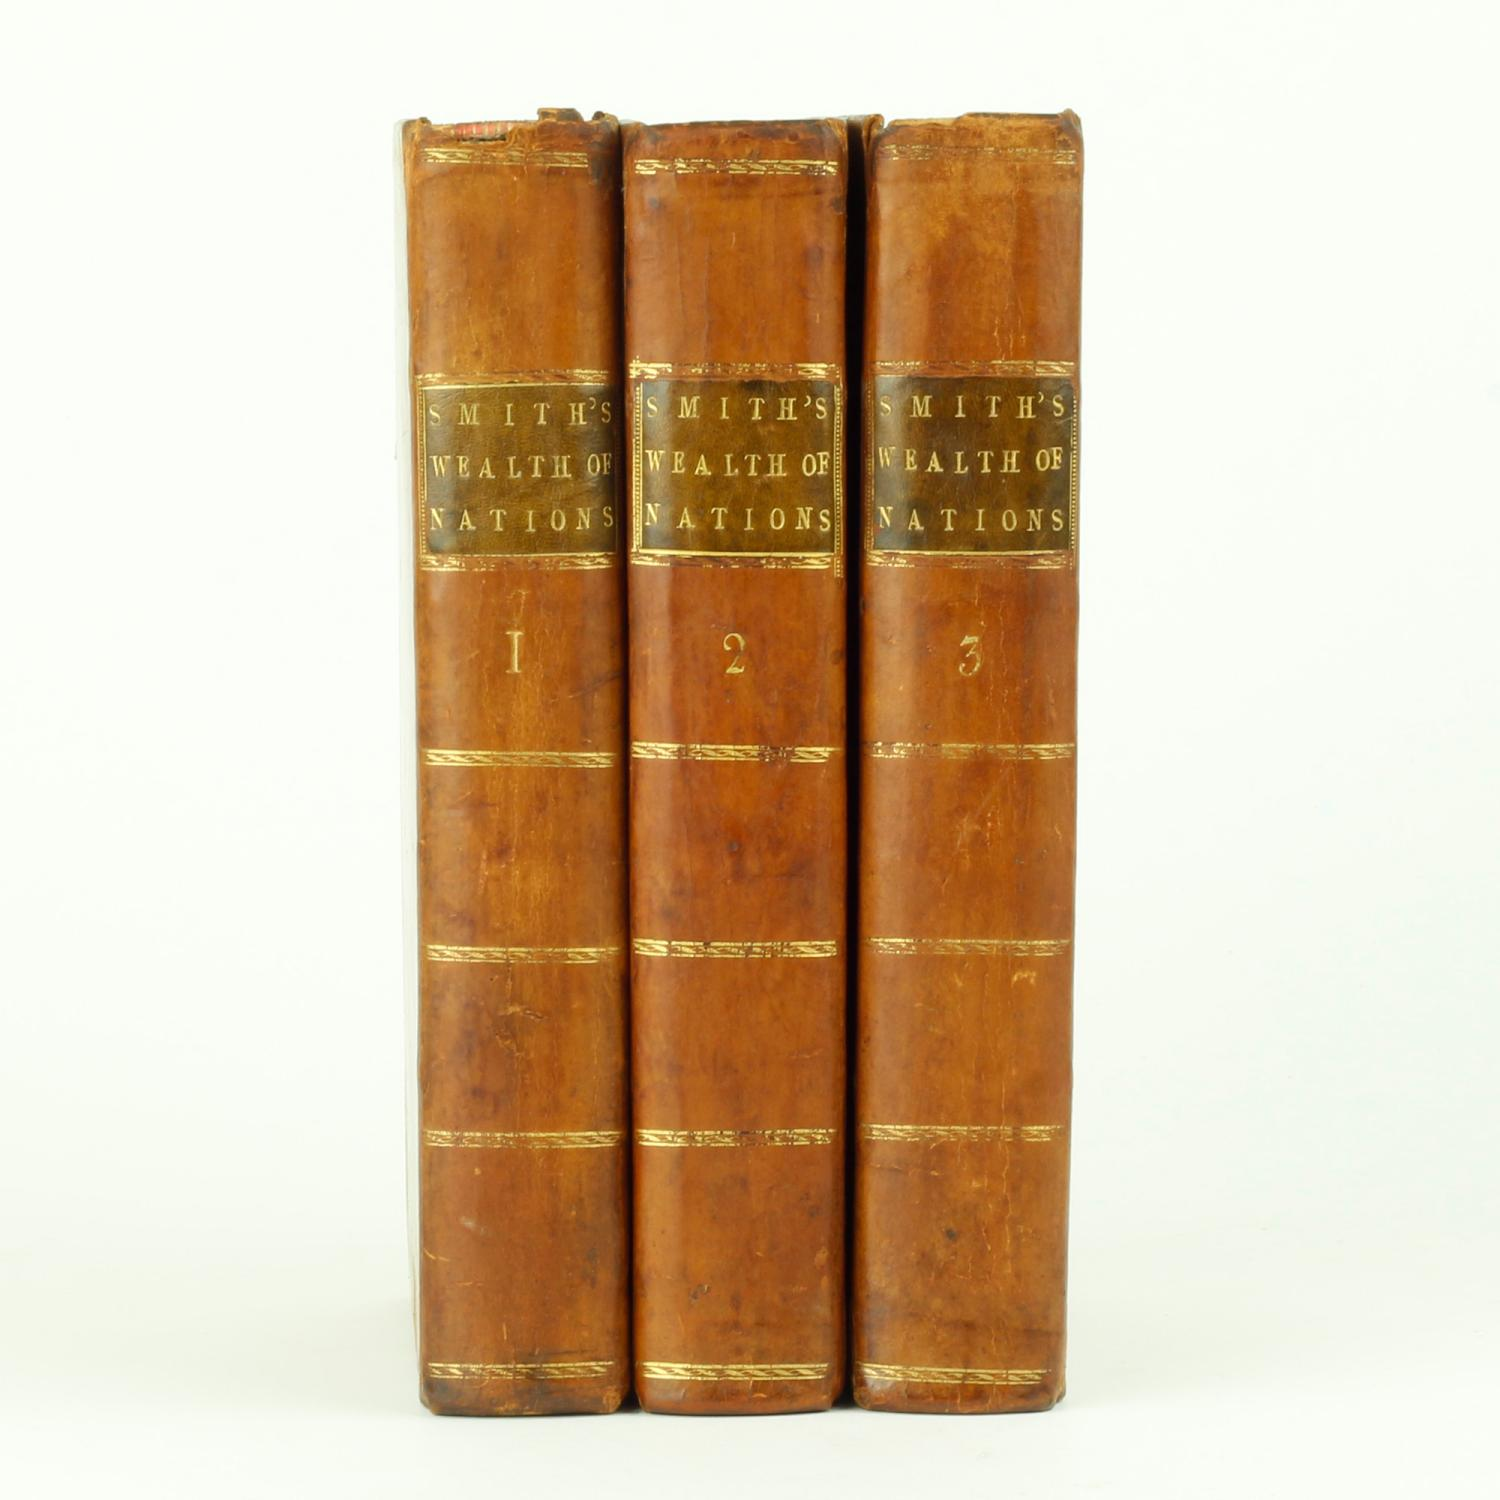 adam smith an inquiry into the Smith, adam an inquiry into the wealth of nations with a life of the author | books, antiquarian & collectible | ebay.